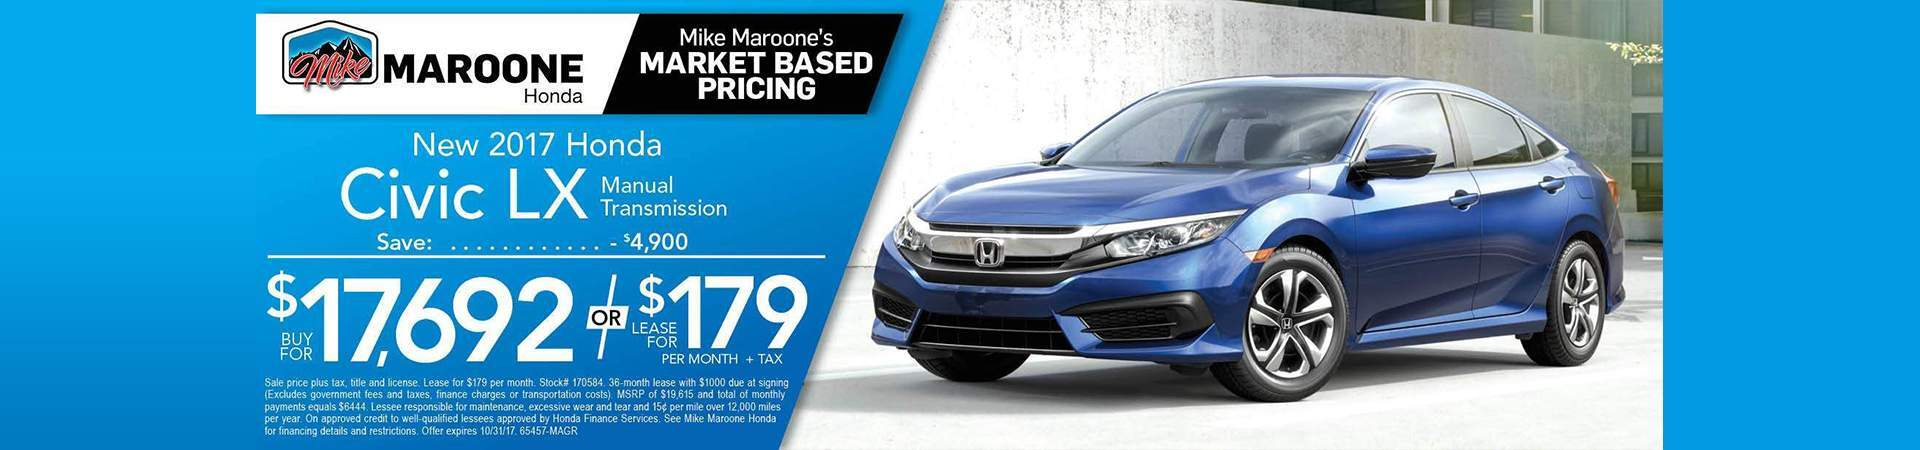 2017 Honda Civic Colorado Springs